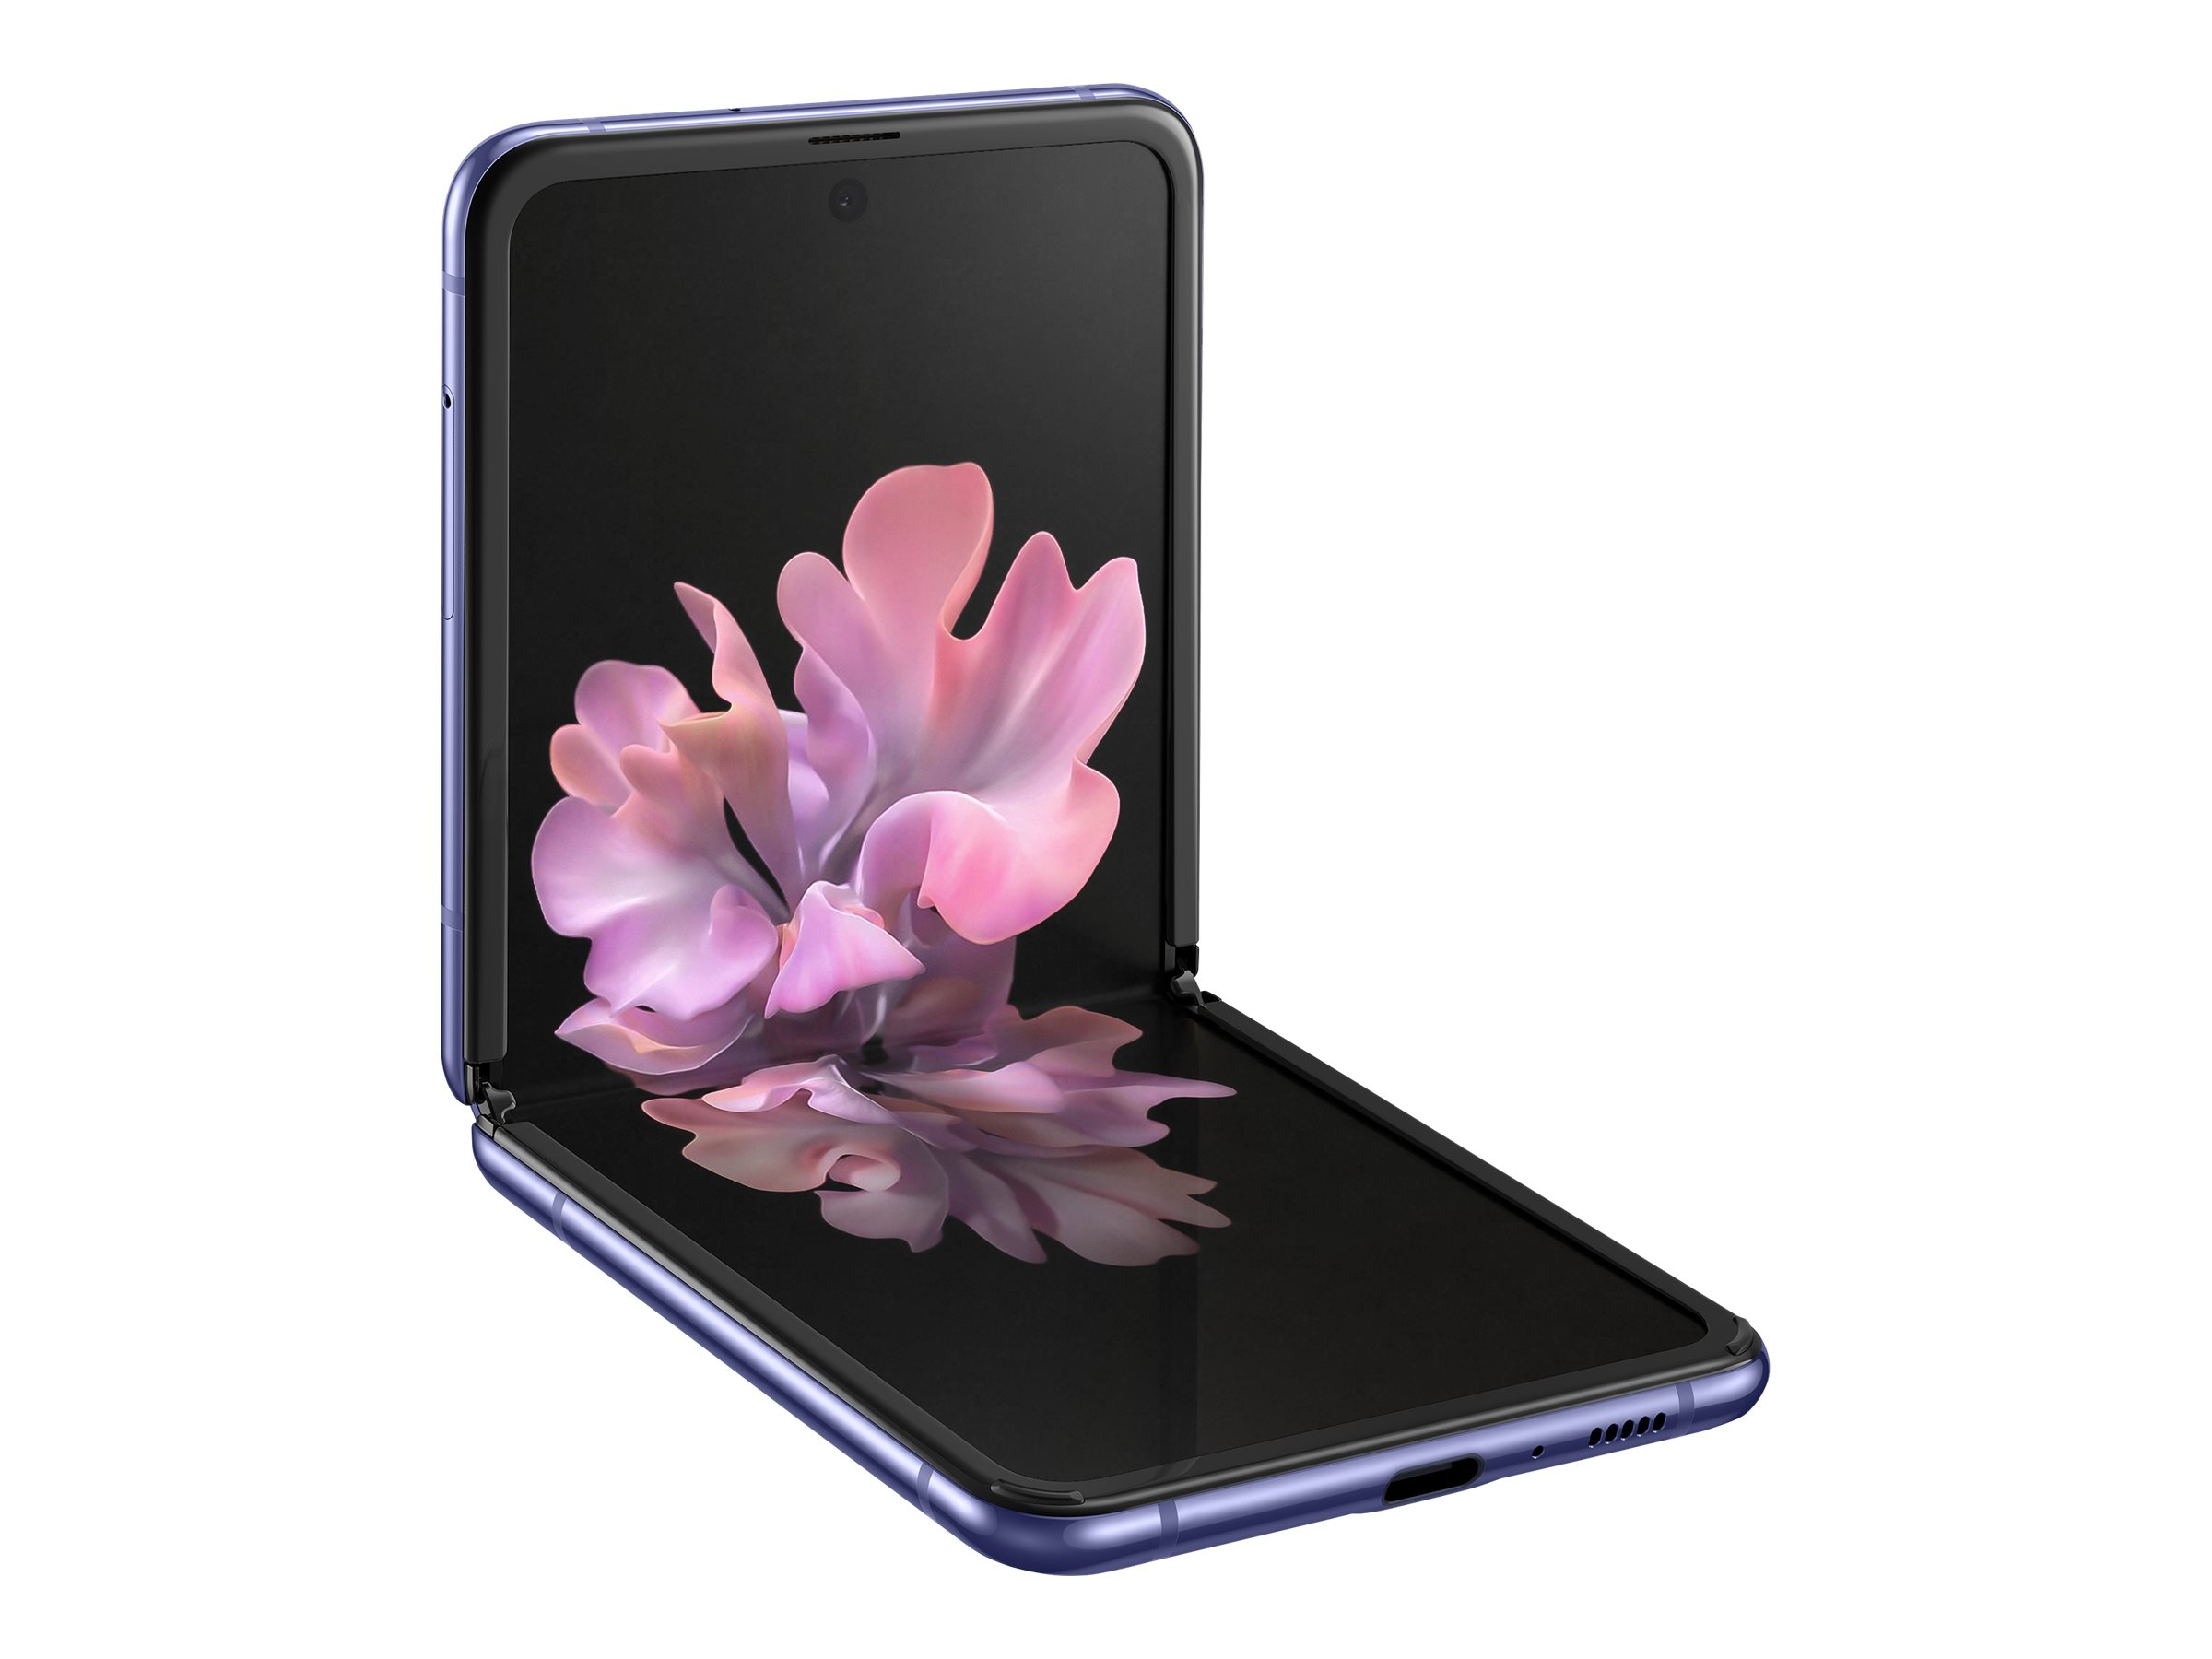 Samsung Galaxy Z Flip - mirror purple - 4G - 256 GB - GSM - smartphone